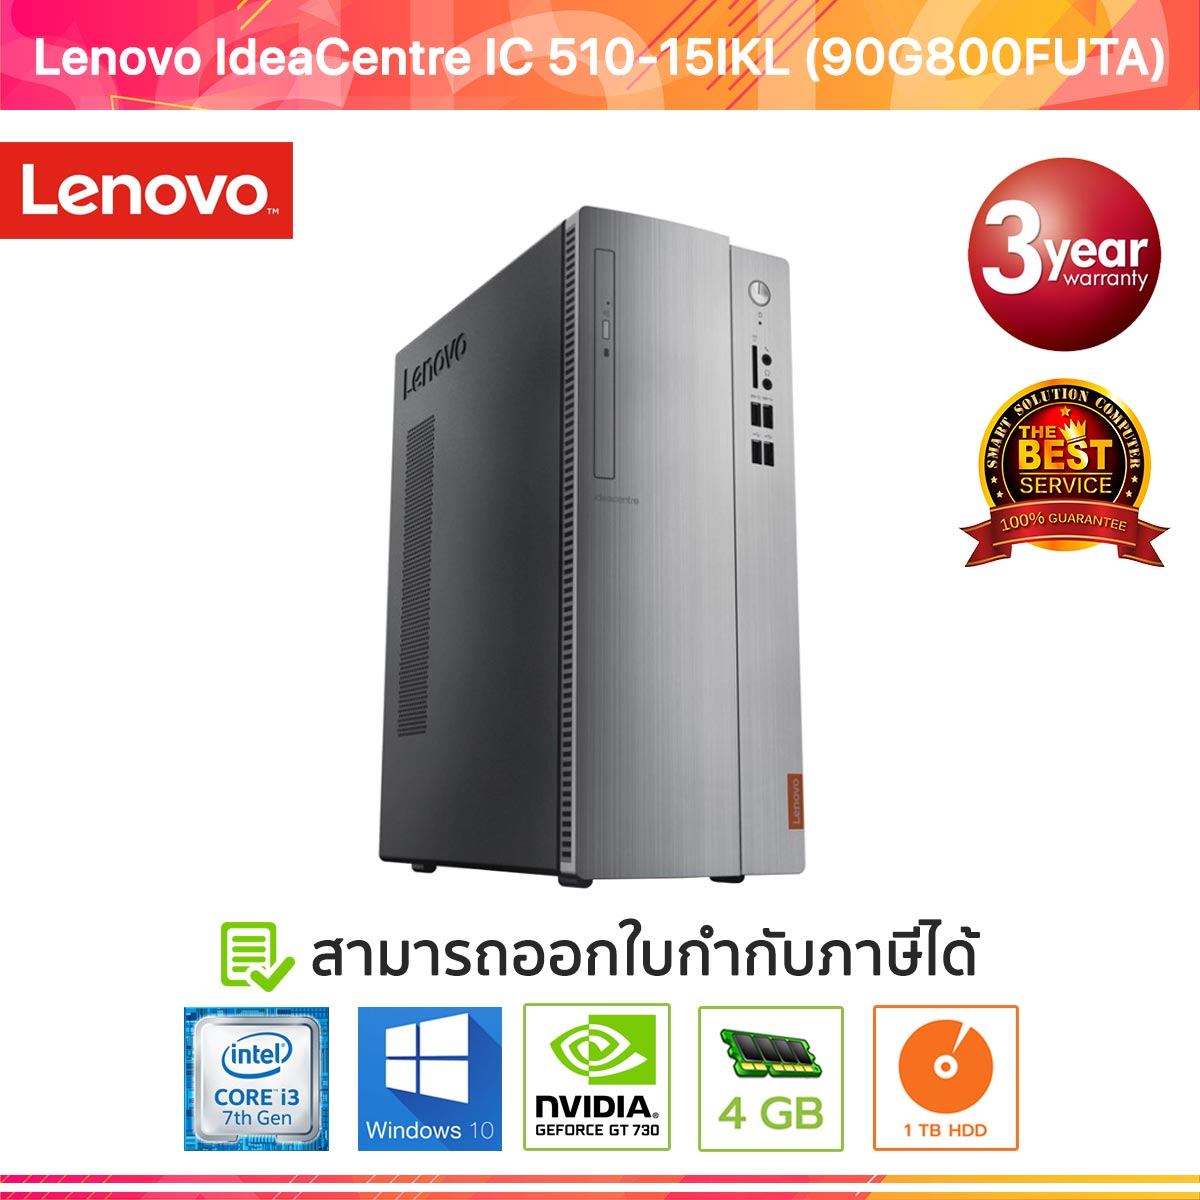 Lenovo IdeaCentre IC 510-15IKL (90G800FUTA) i3-7100/4GB/1TB/GT730 2GB/Win10